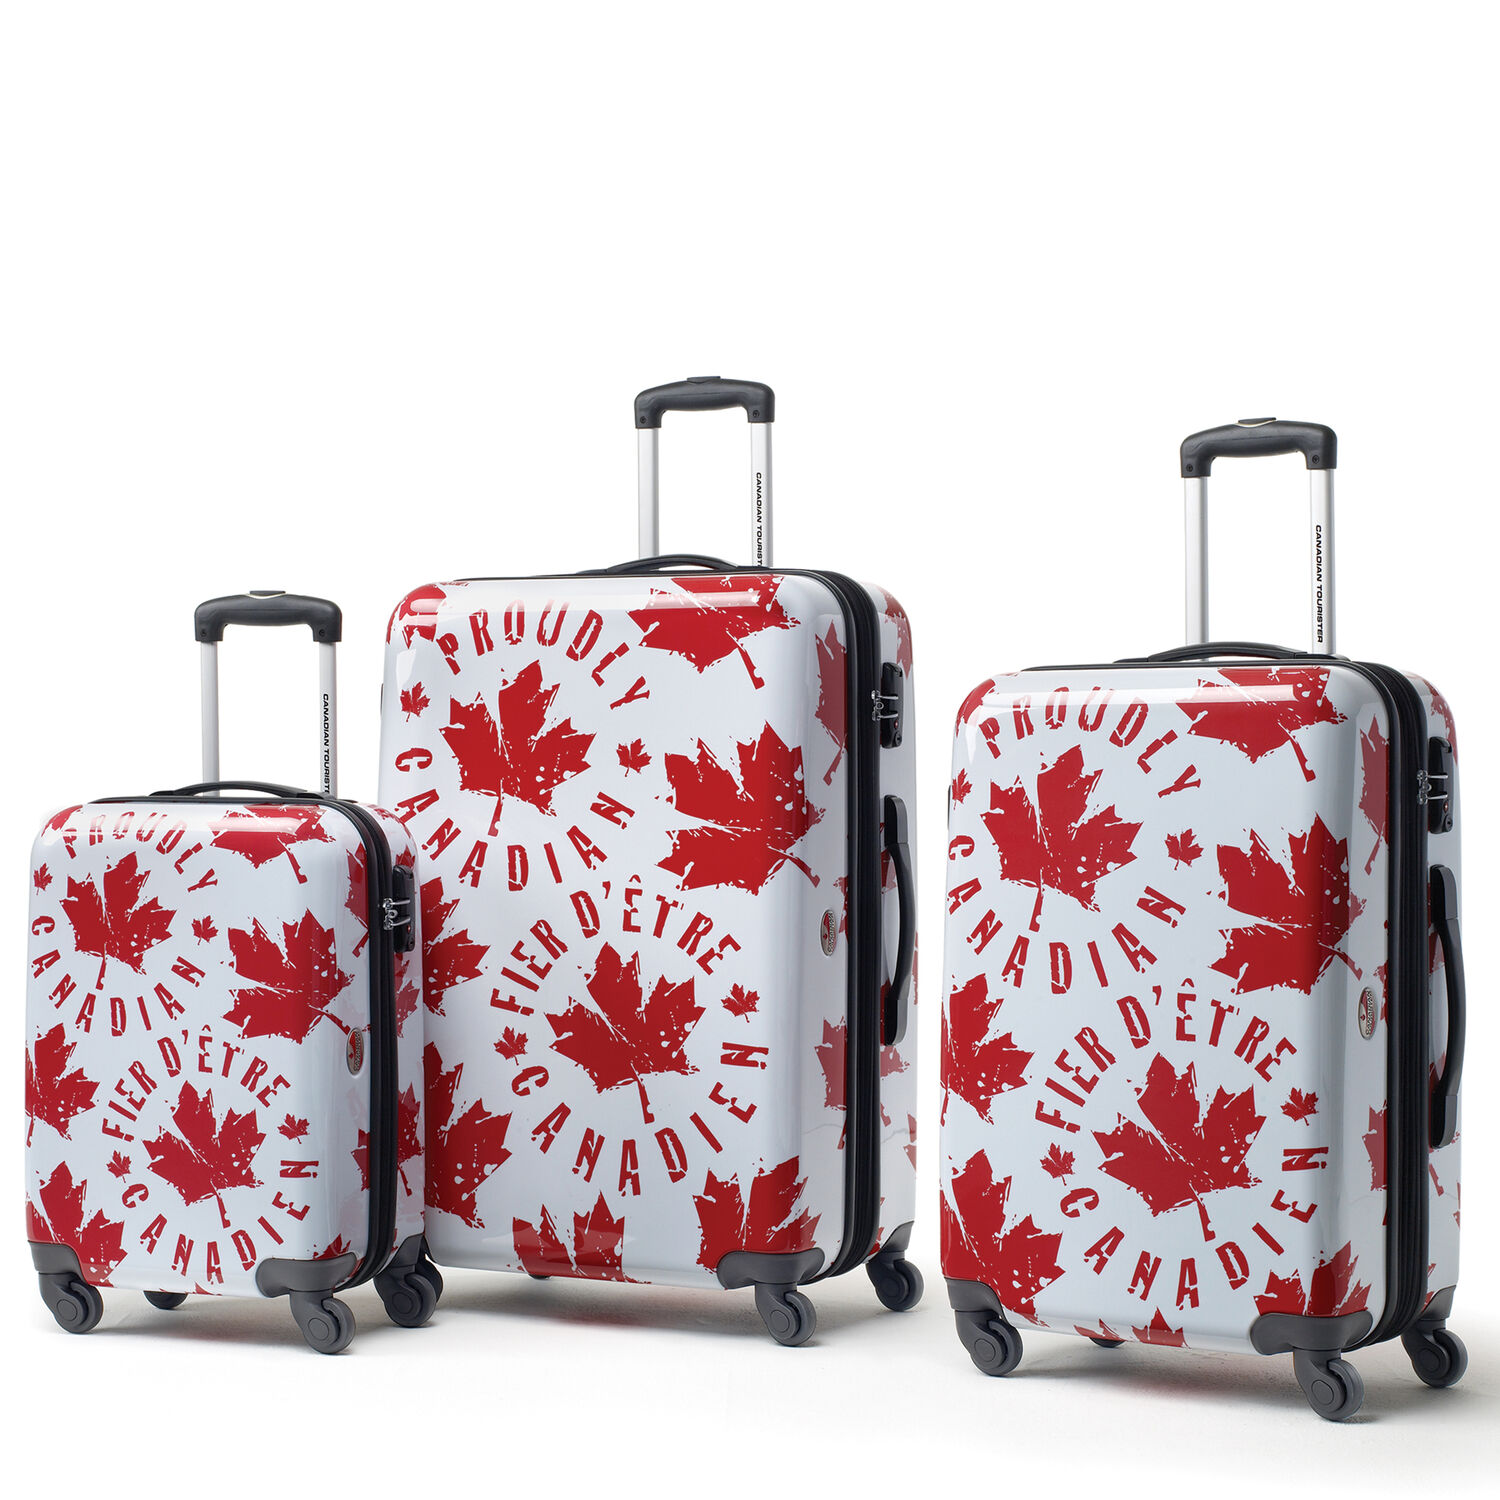 ca906f1a6874 Canadian Tourister Collection 3 Piece Set